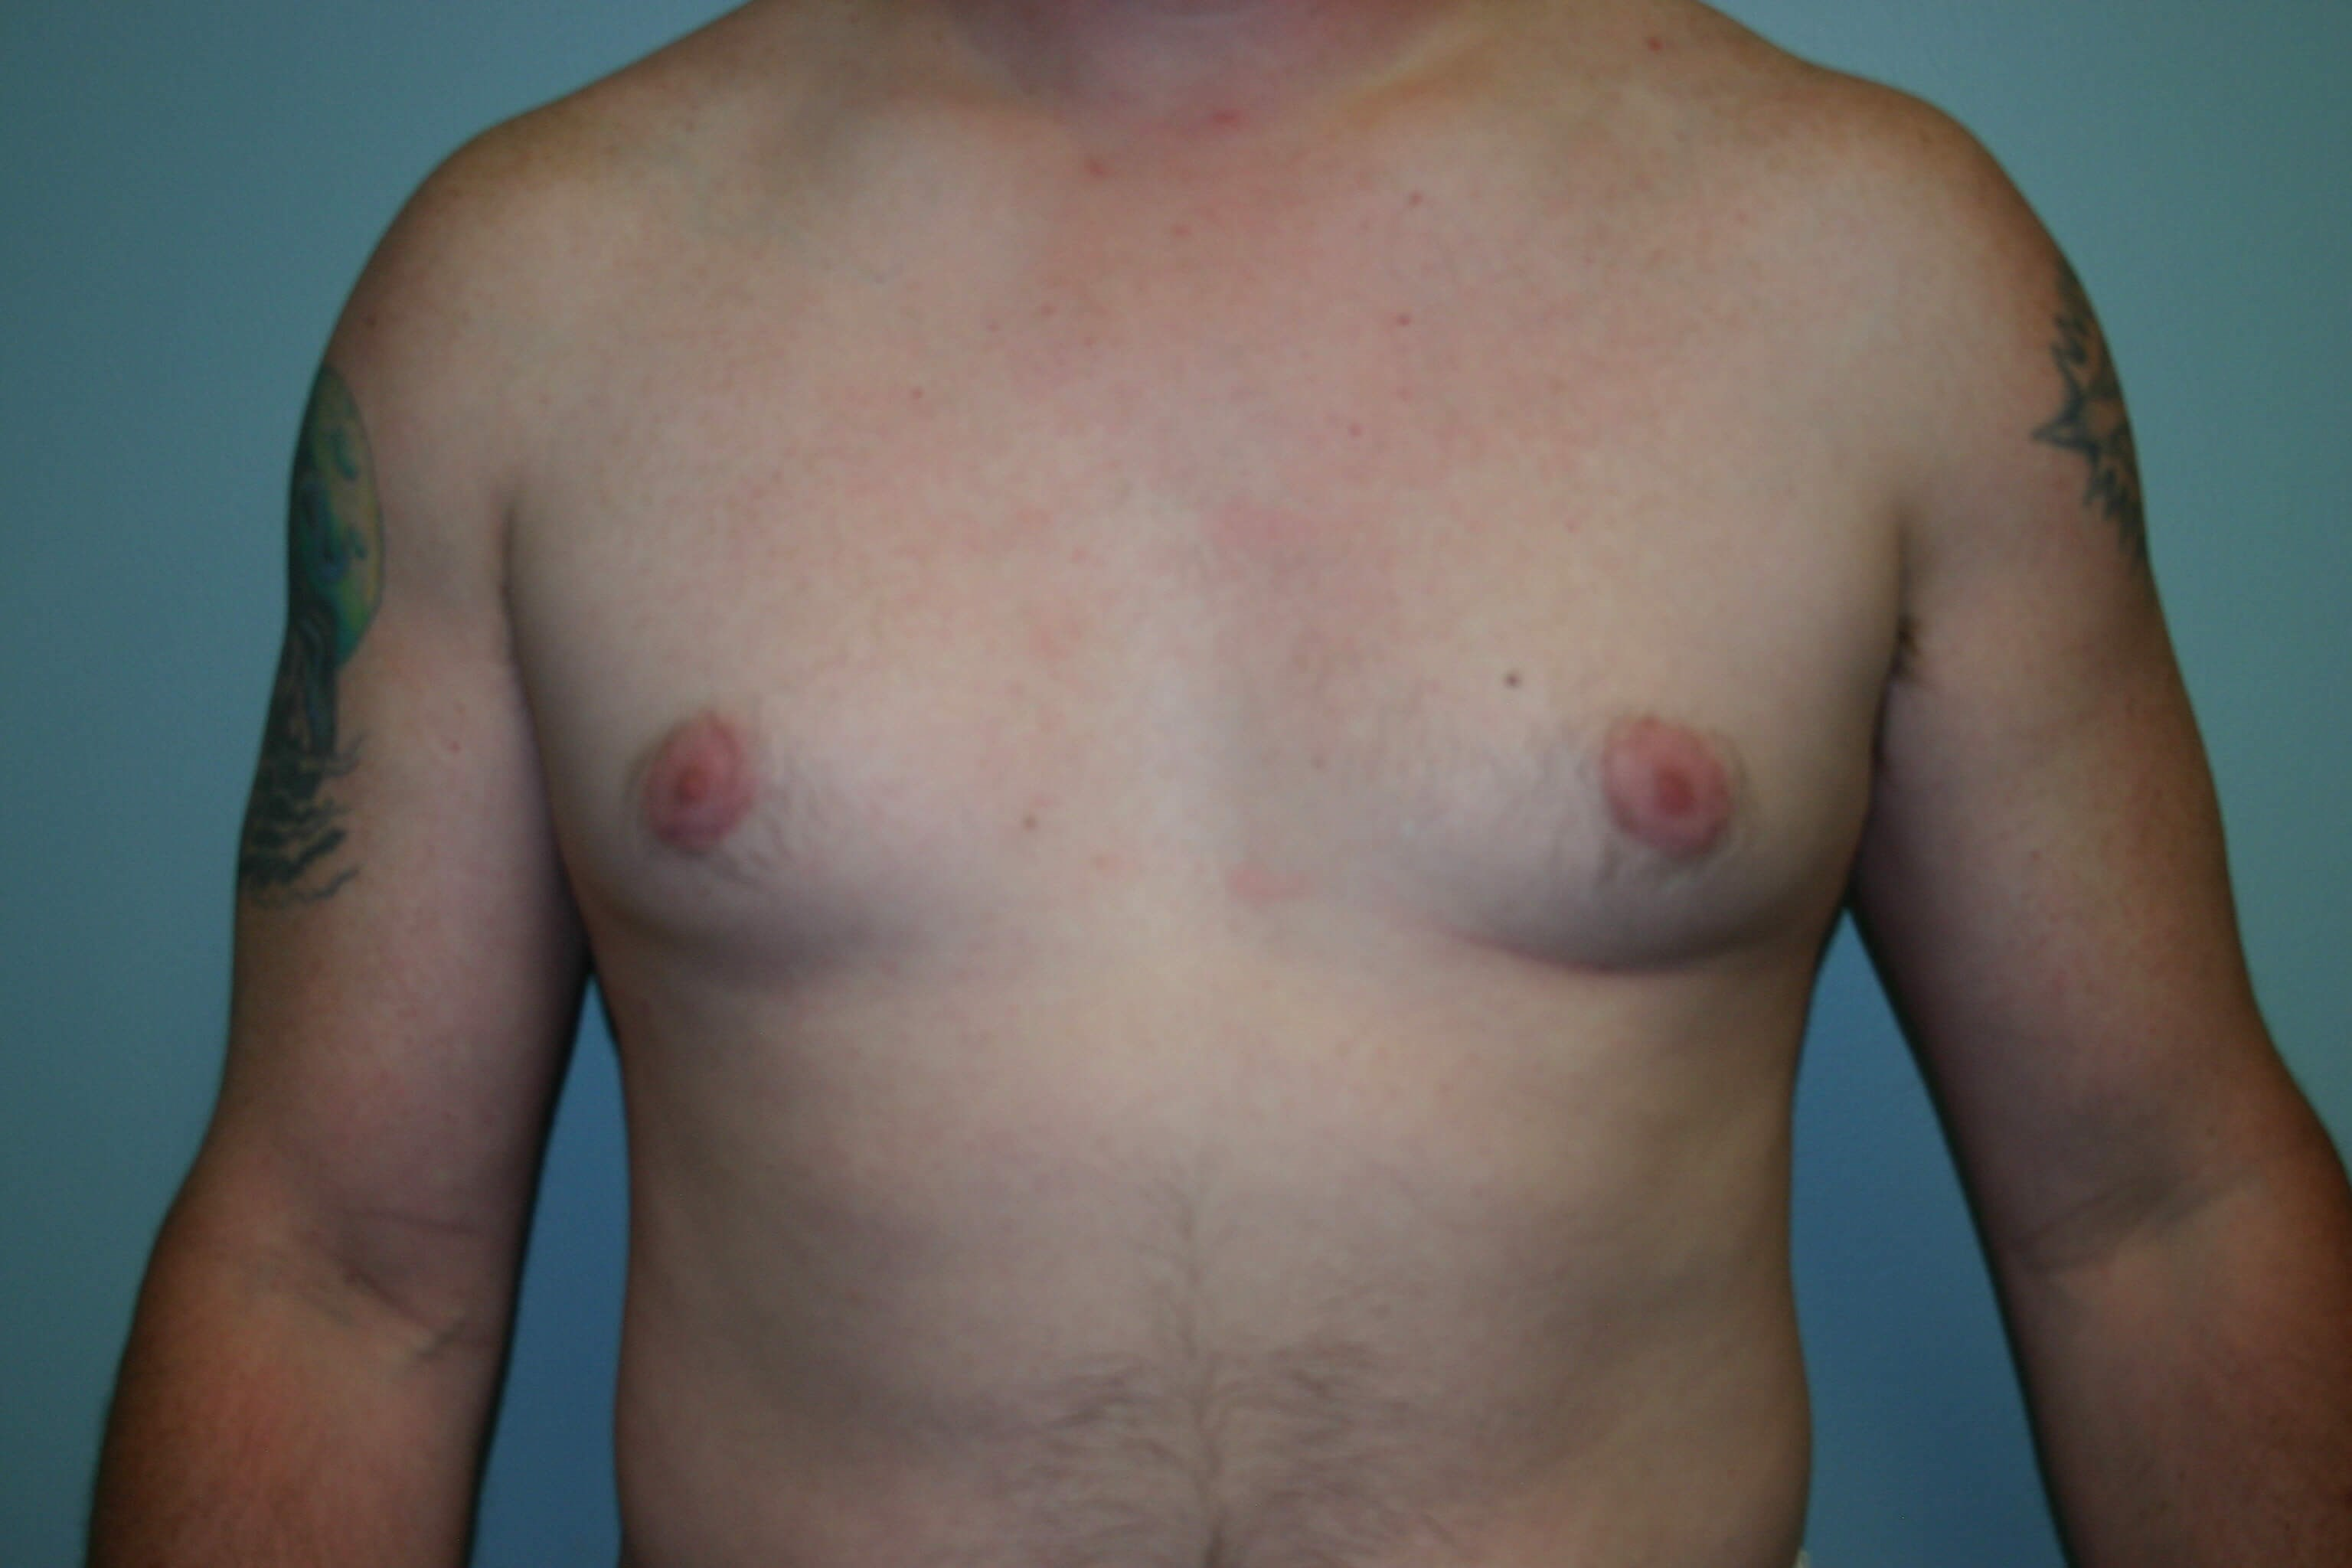 6 Months Post-op Gynecomastia Before